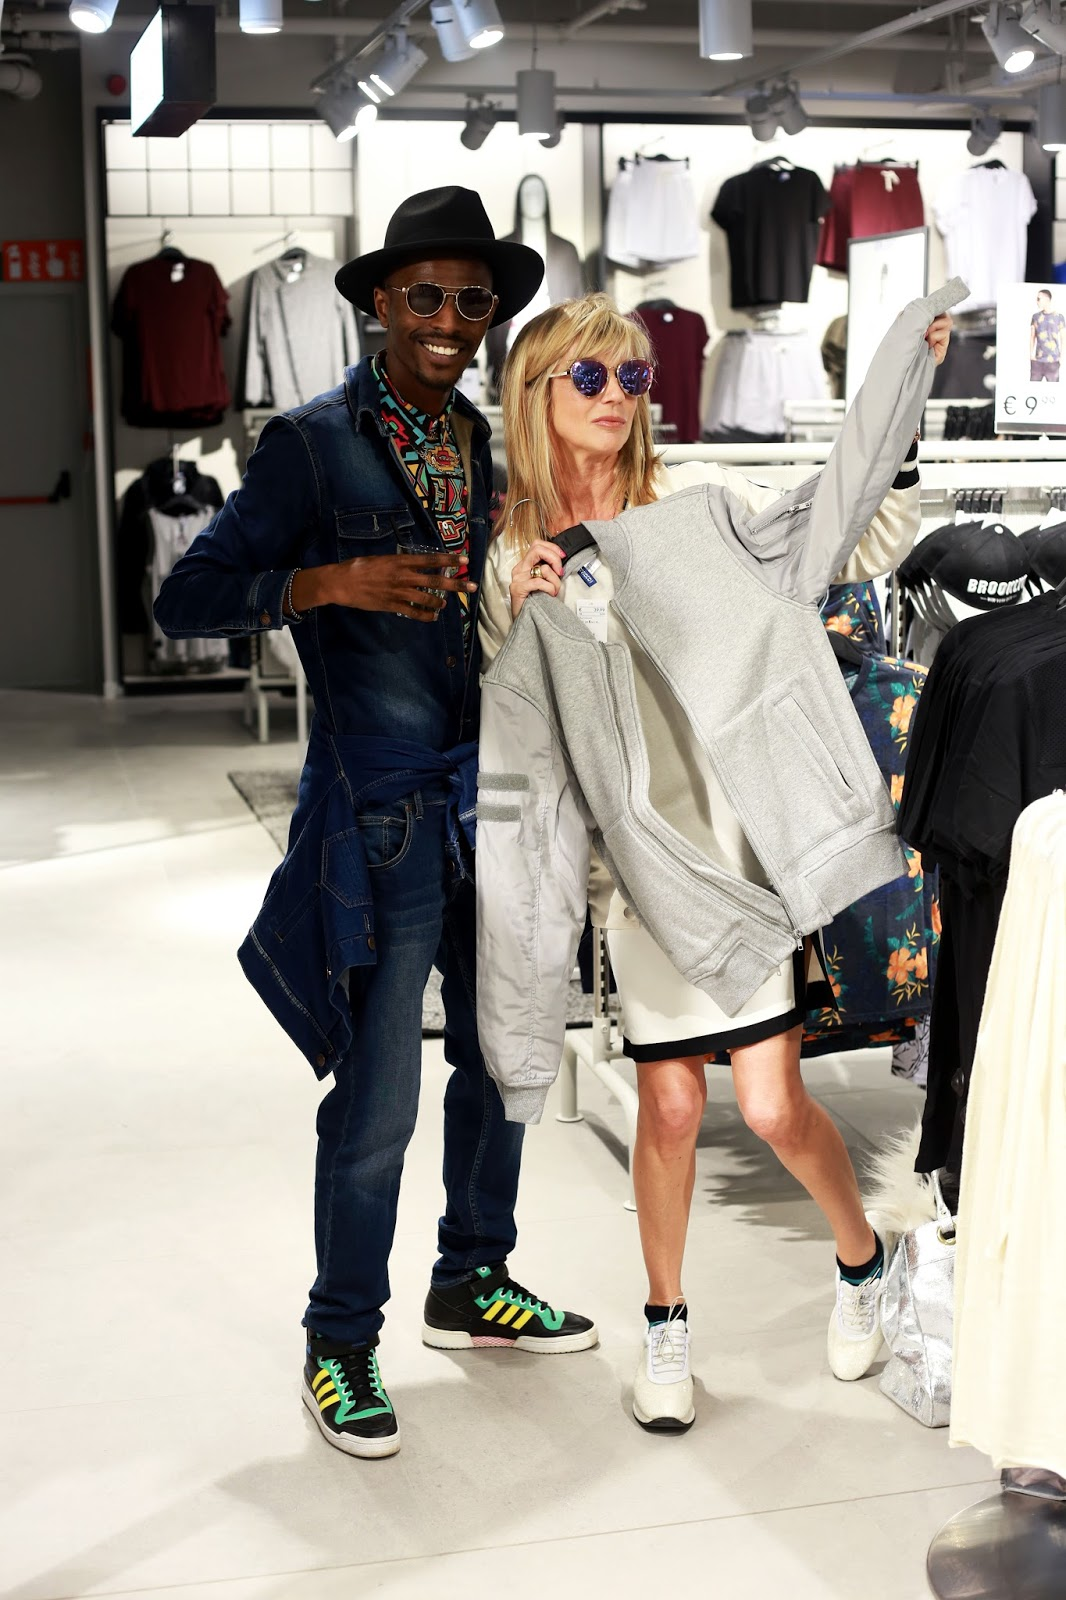 Good Times at H&M Beach at the new H&M Store in Antwerp - wearing the Hm x Coachella collection